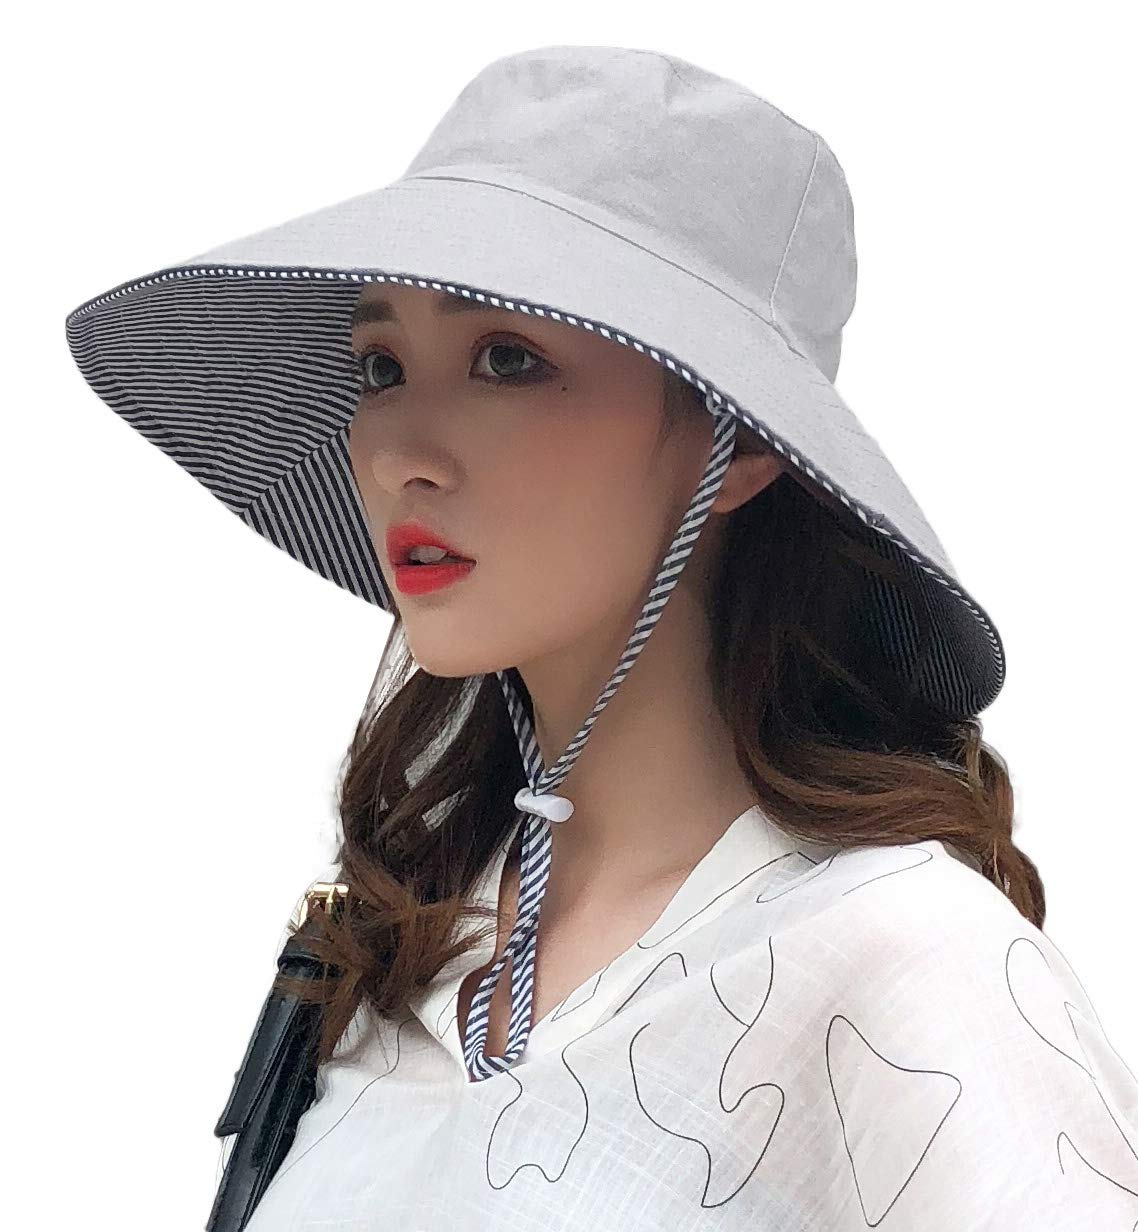 E.Joy Online Womens Reversible Bucket Hats Summer Garden Shade Sunblock Beach Safari Hat UPF SPF 50 Packable Cotton Light Grey